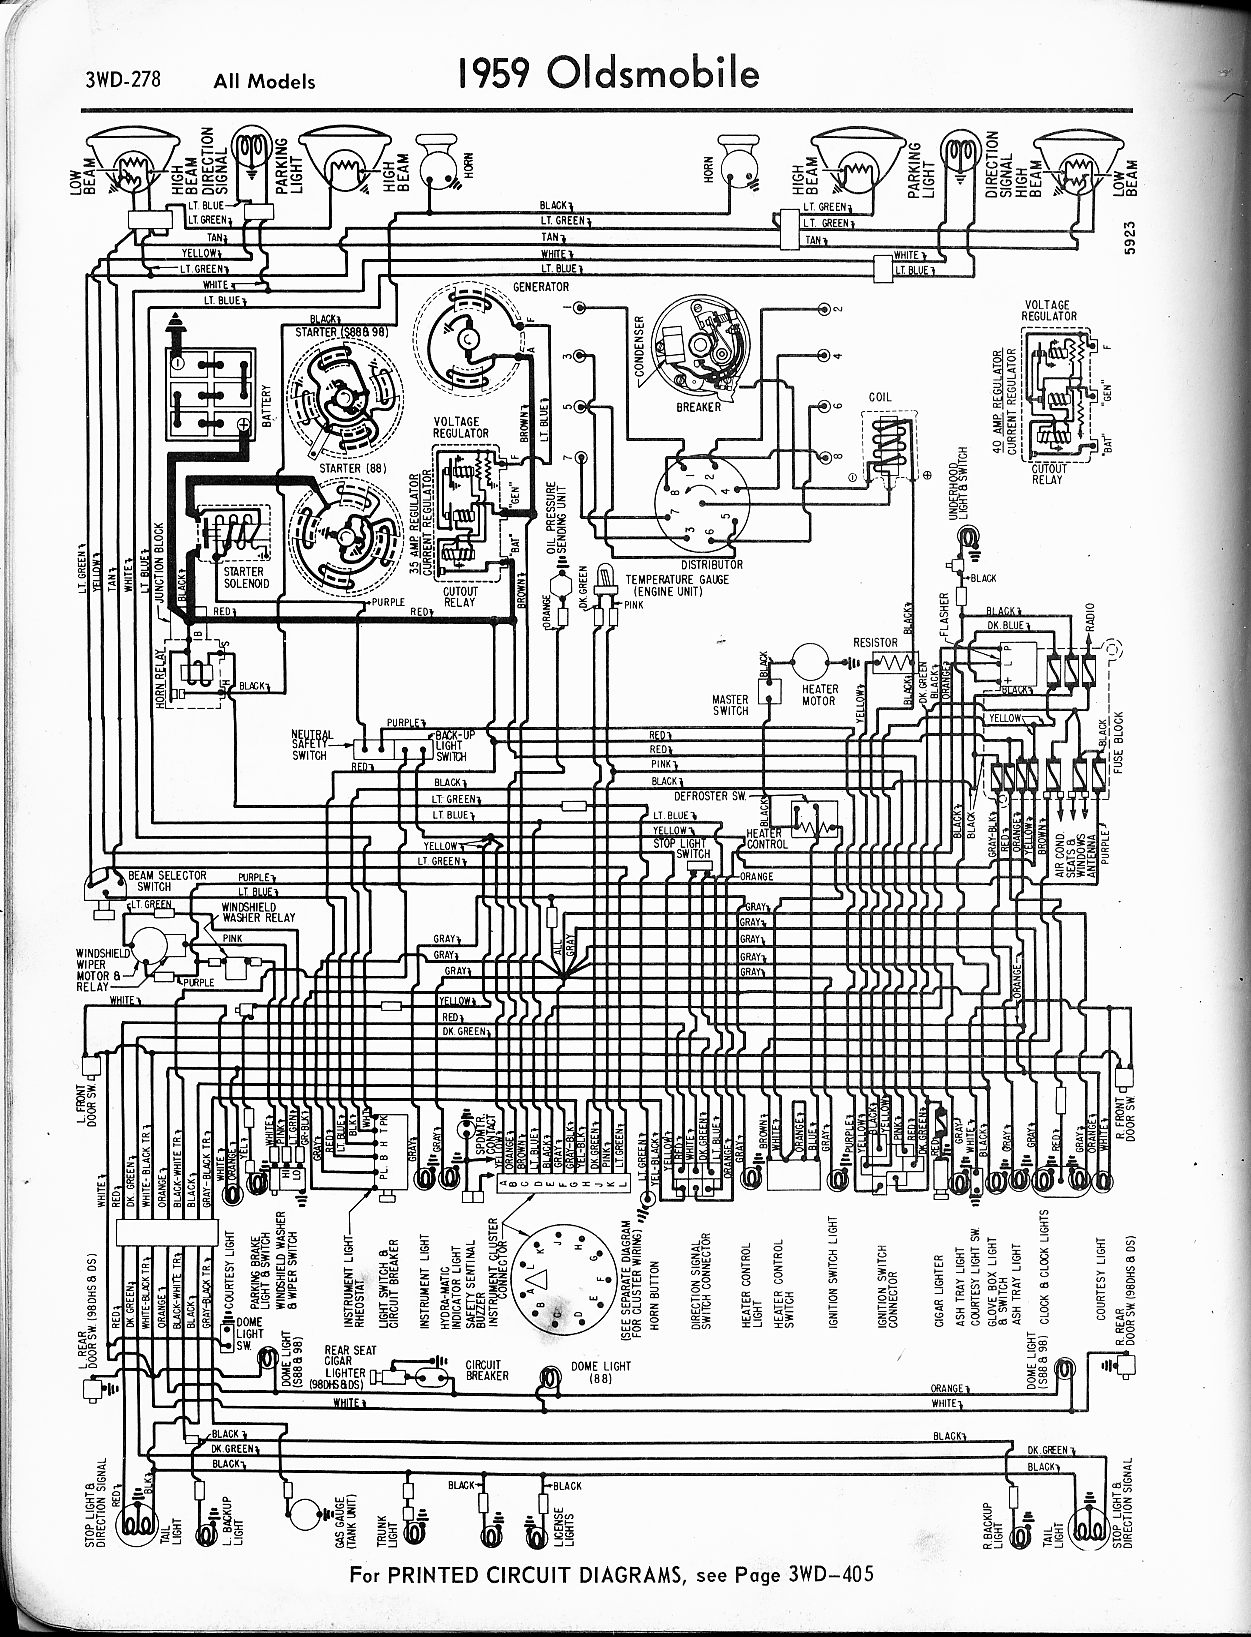 Oldsmobile Radio Wiring - Wiring Diagram Mega on pt cruiser wiring harness, super beetle wiring harness, vue wiring harness,